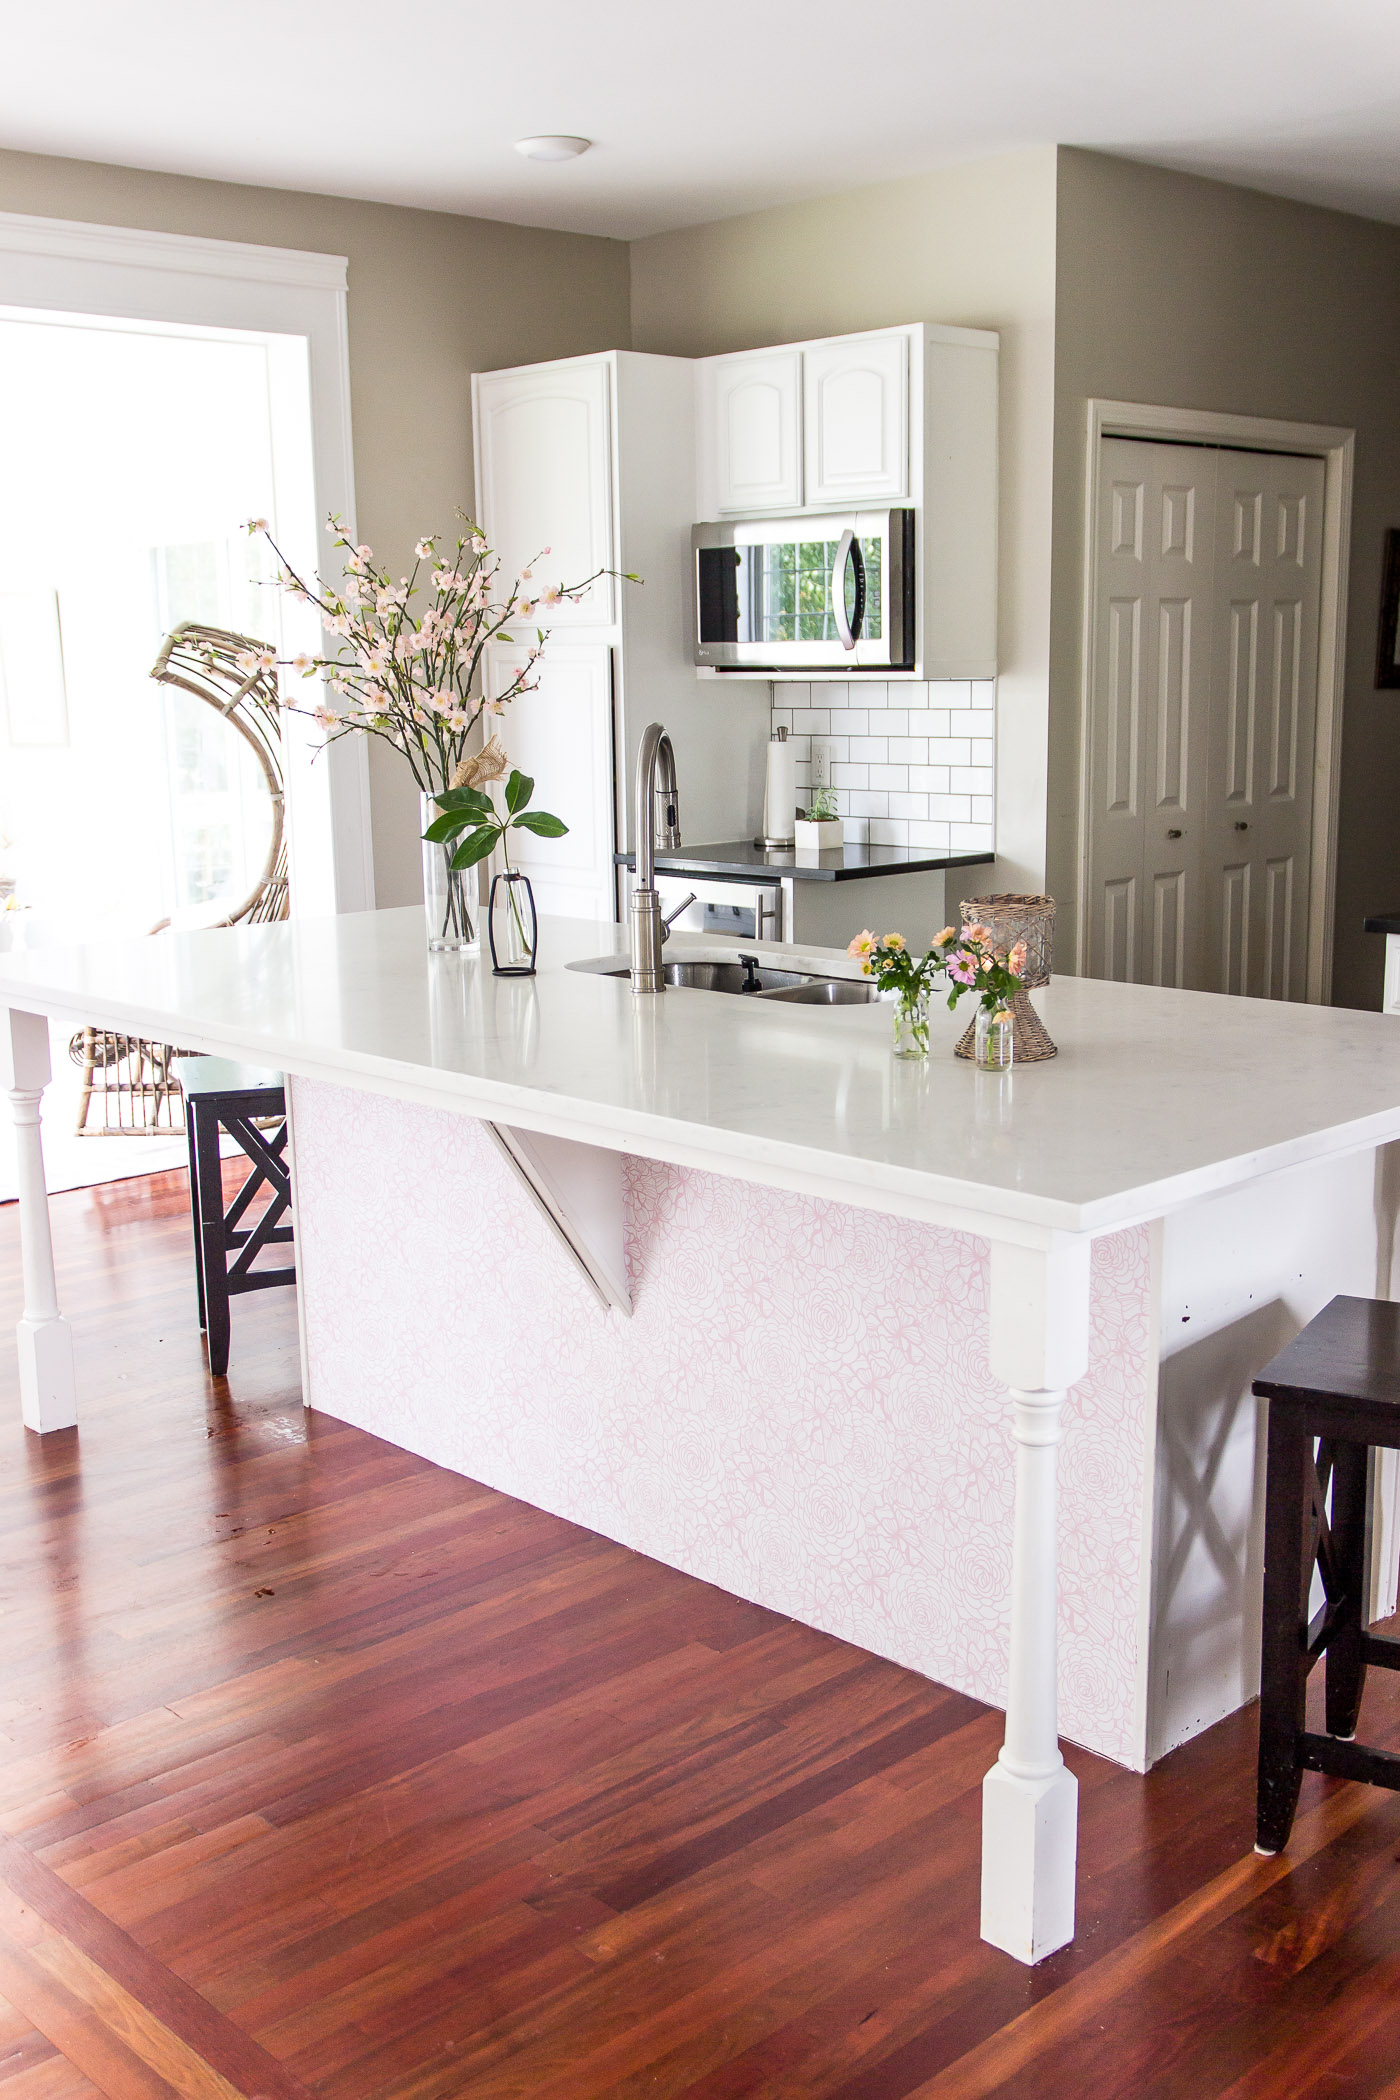 10 Kitchen And Home Decor Items Every 20 Something Needs: The Time I Wallpapered Our Kitchen Island.....